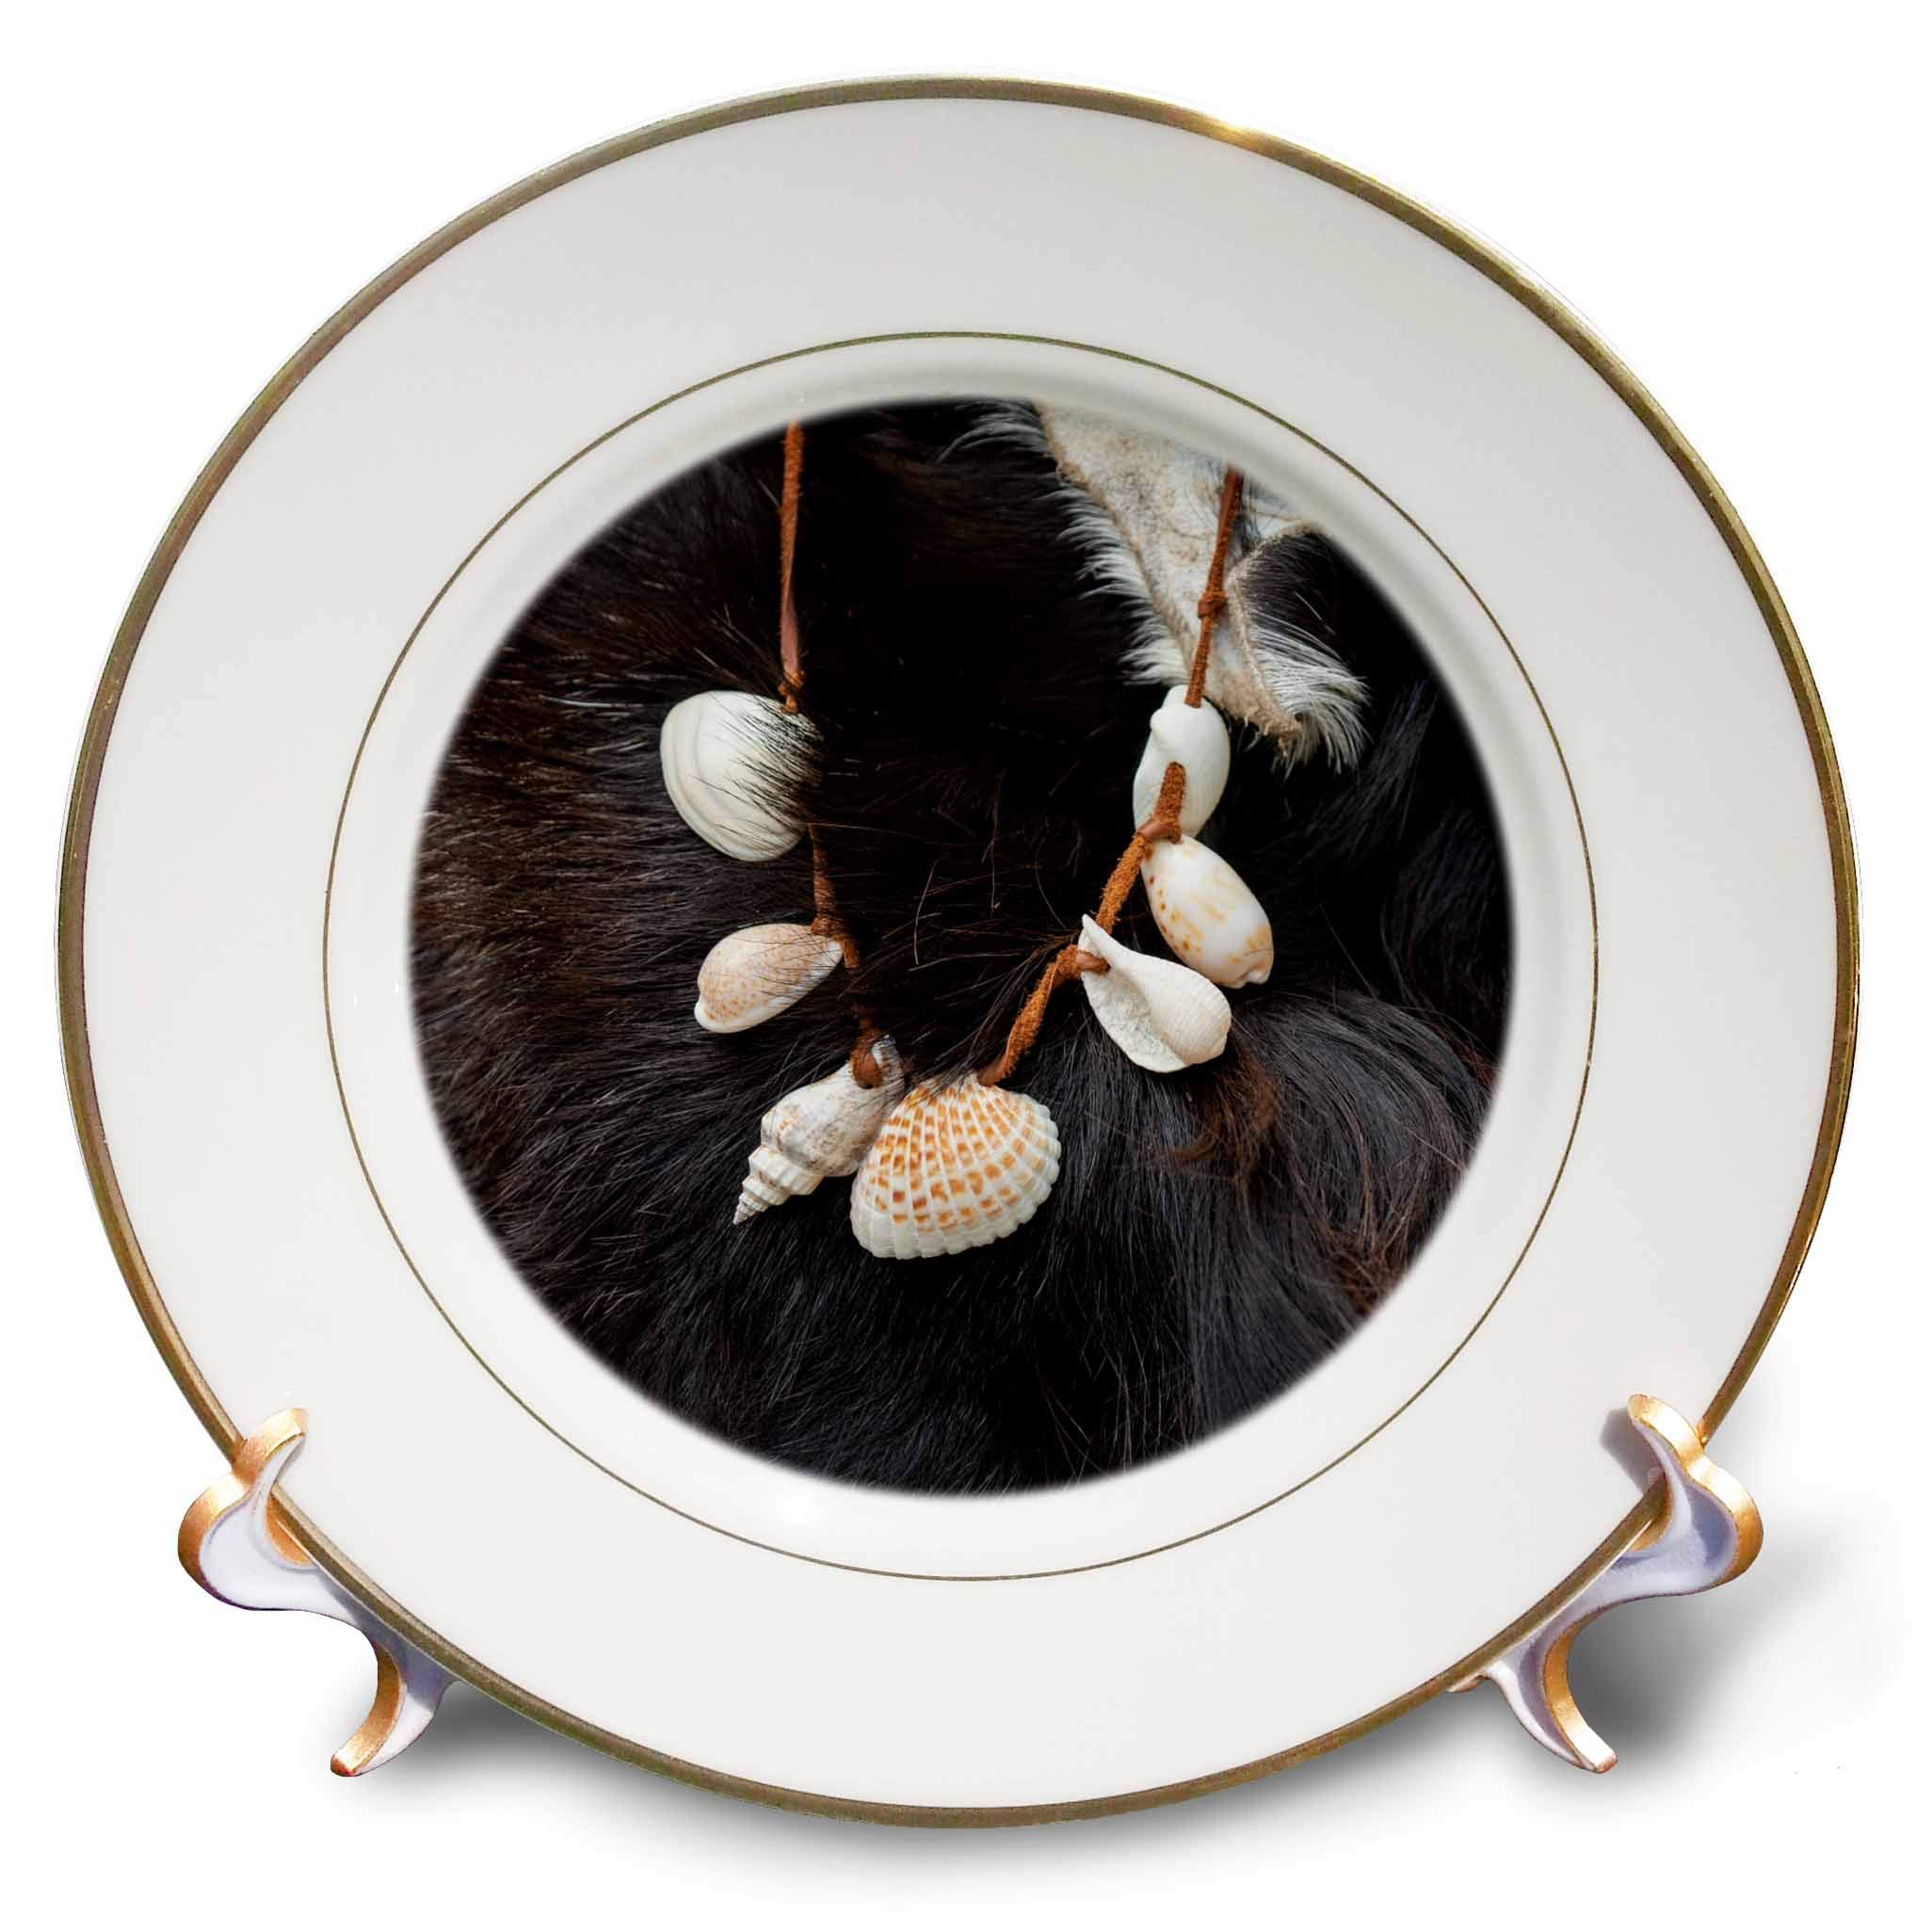 3dRose Alexis Photography - Objects Misc. - Image of sea Shells on a String and an Animal Fur. Stone Age Decor - 8 inch Porcelain Plate (cp_295022_1)